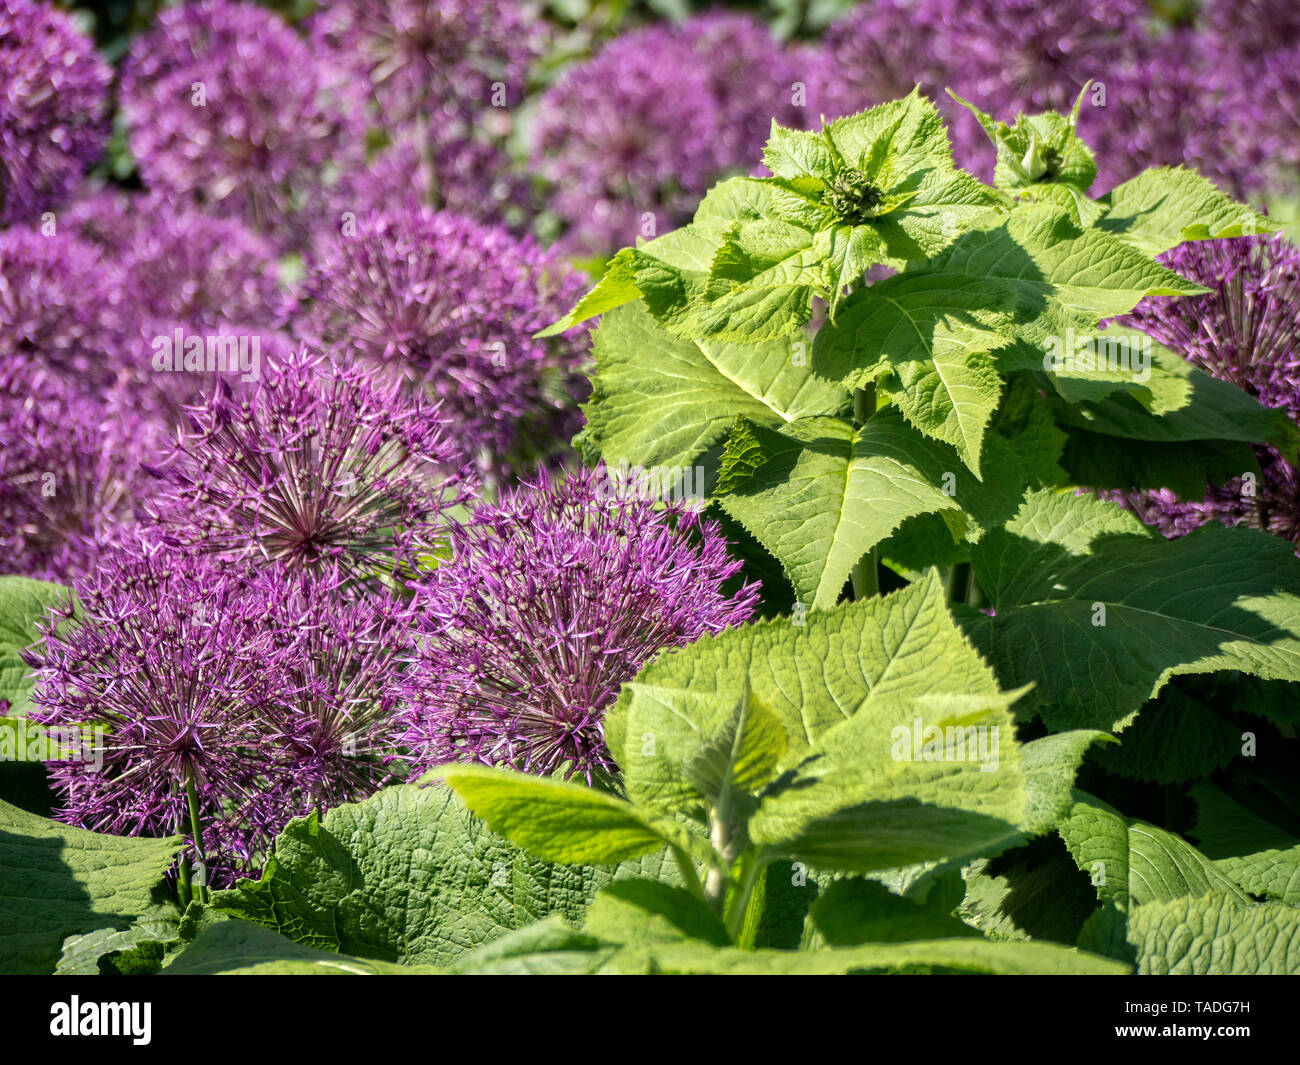 Giant Alliums in boarder with large green foliage. Stock Photo